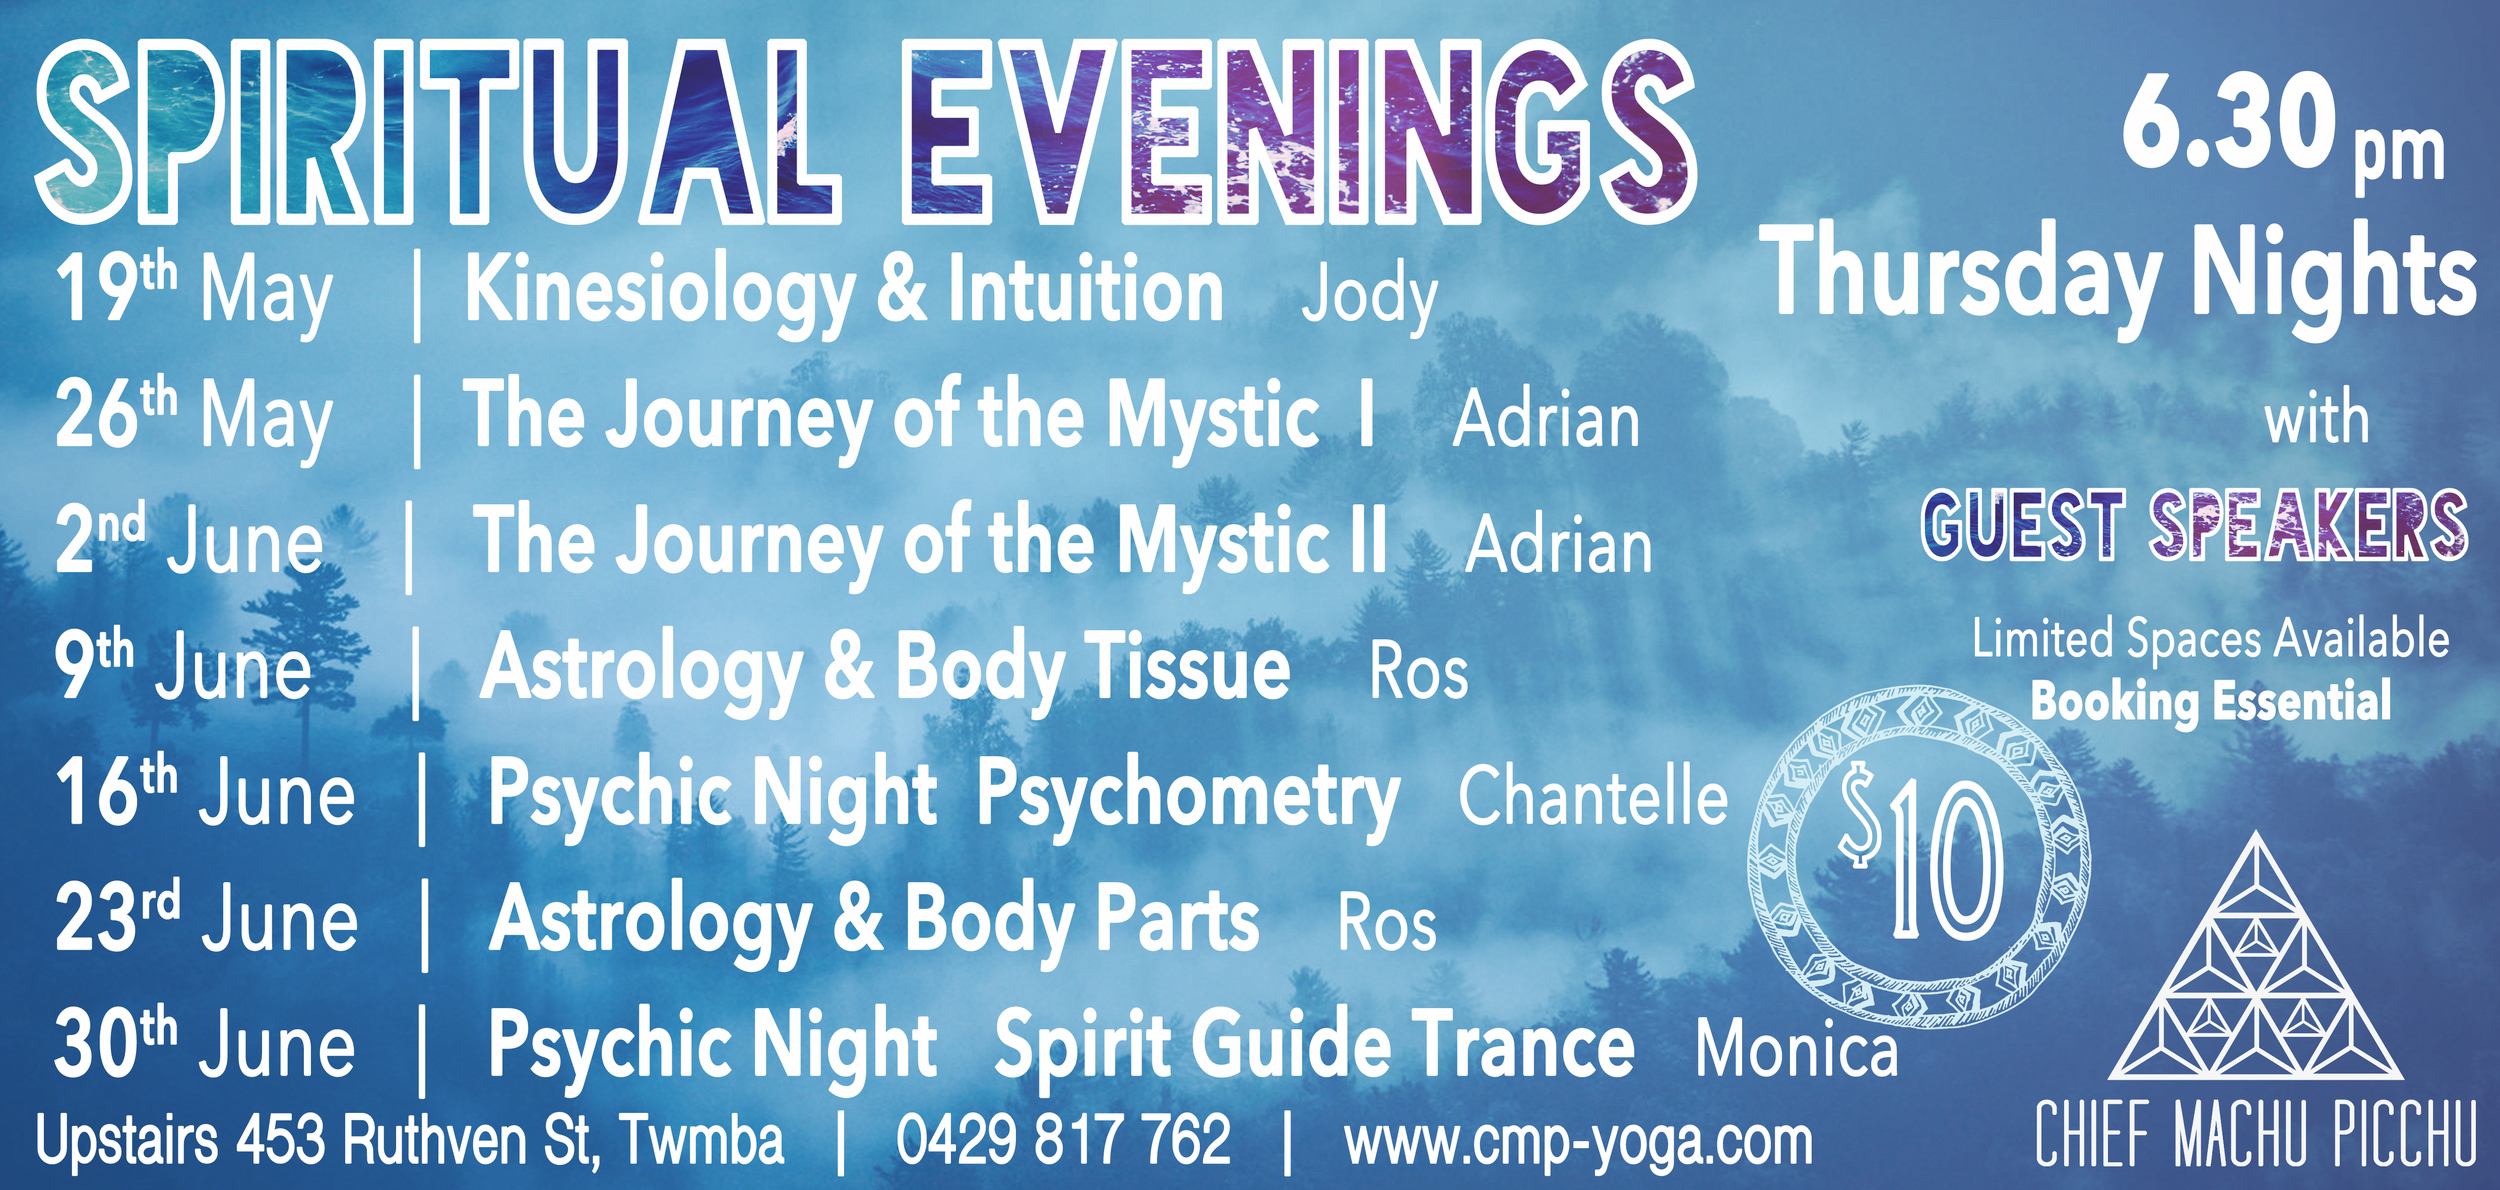 Spiritual Evenings here in Toowoomba! On Thursday nights   Dates from May to June 2016   All $10 Entry!